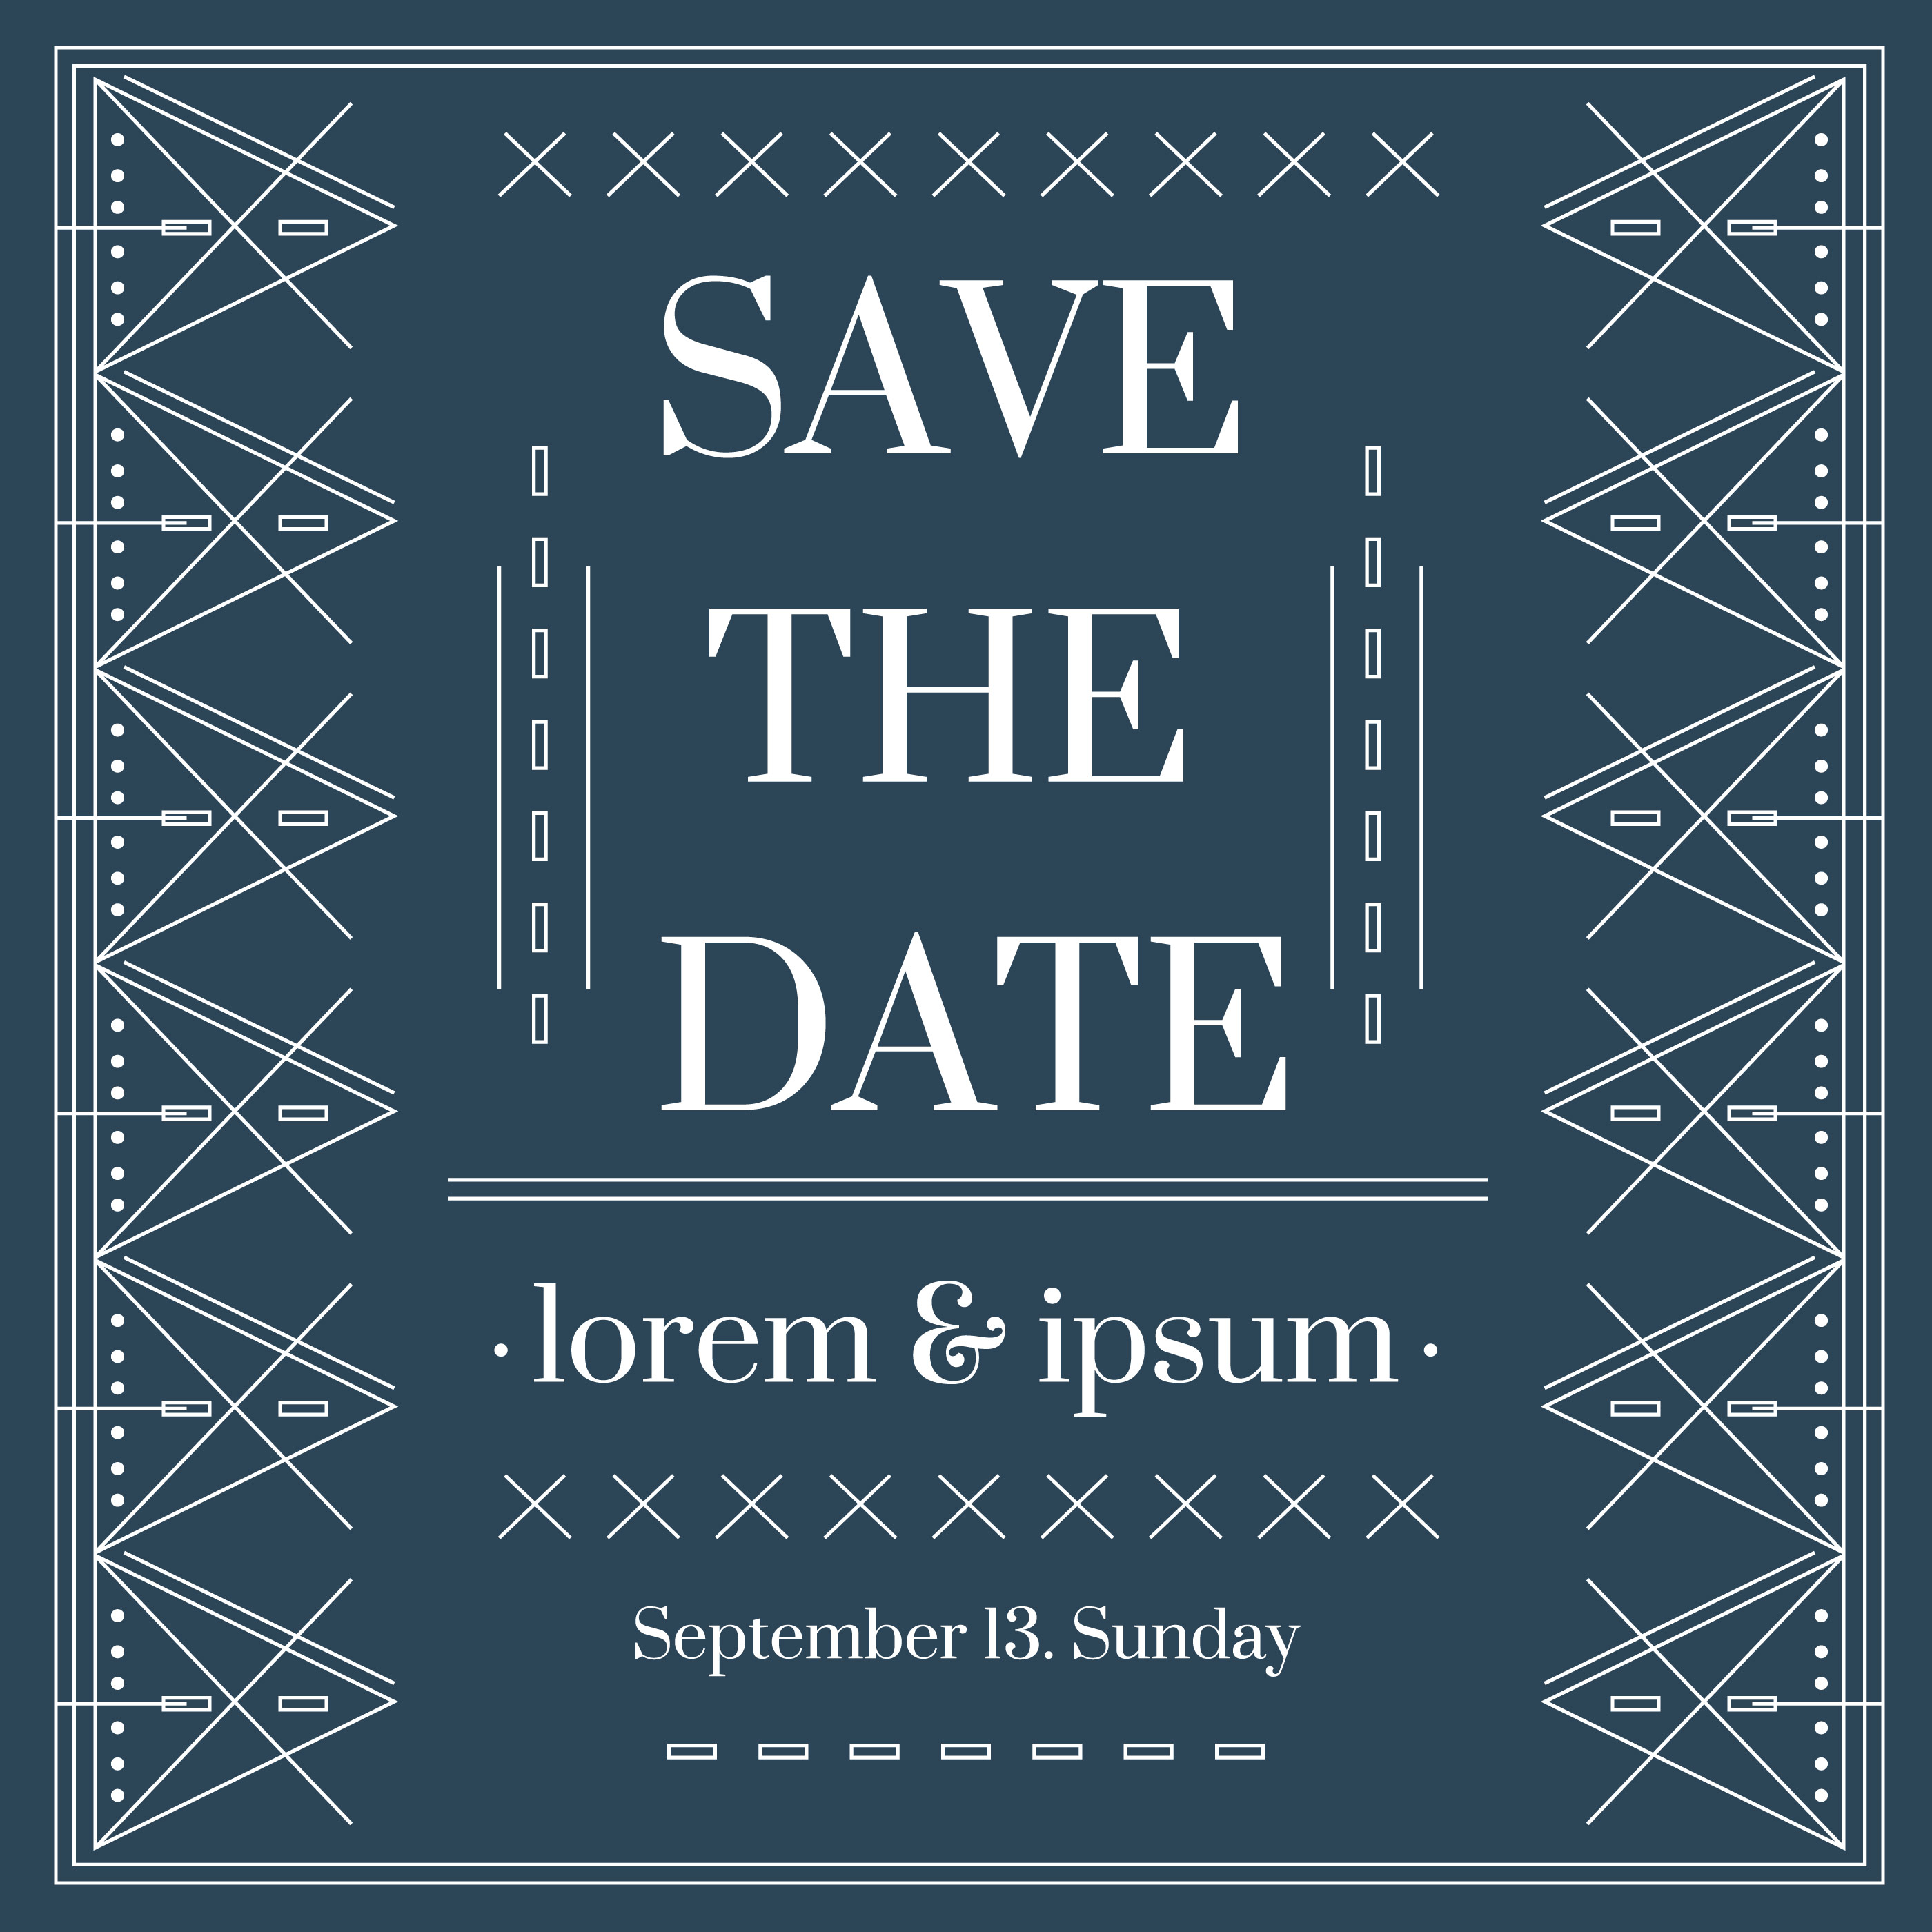 Save the date vector download free vector art stock graphics images for Save the date vector